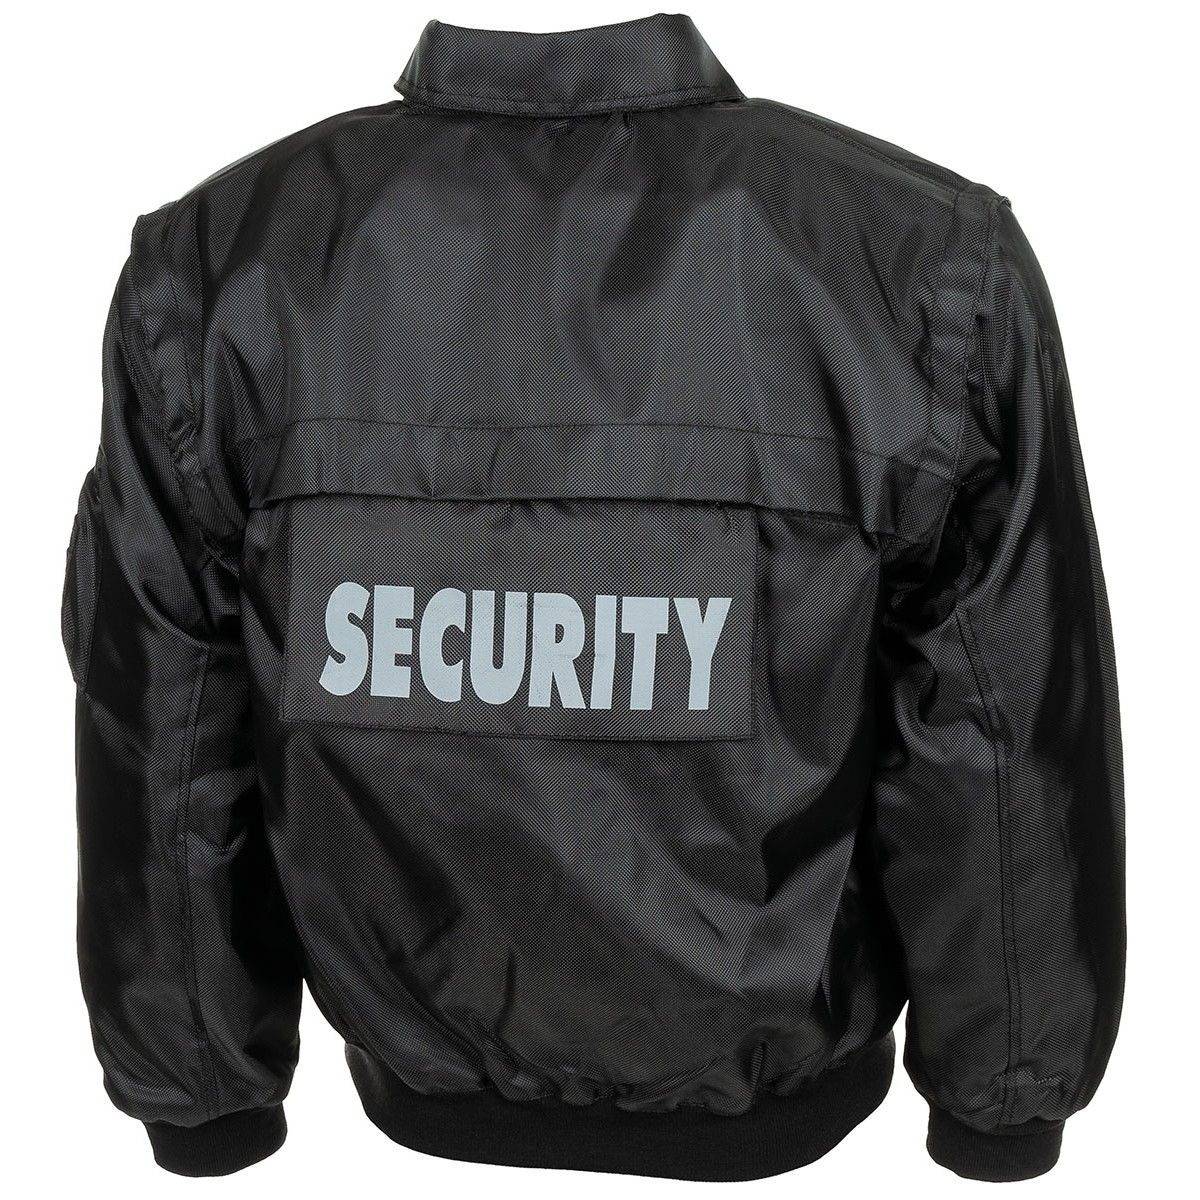 securitykleidung-jacken-securityhemden-hosen-westen